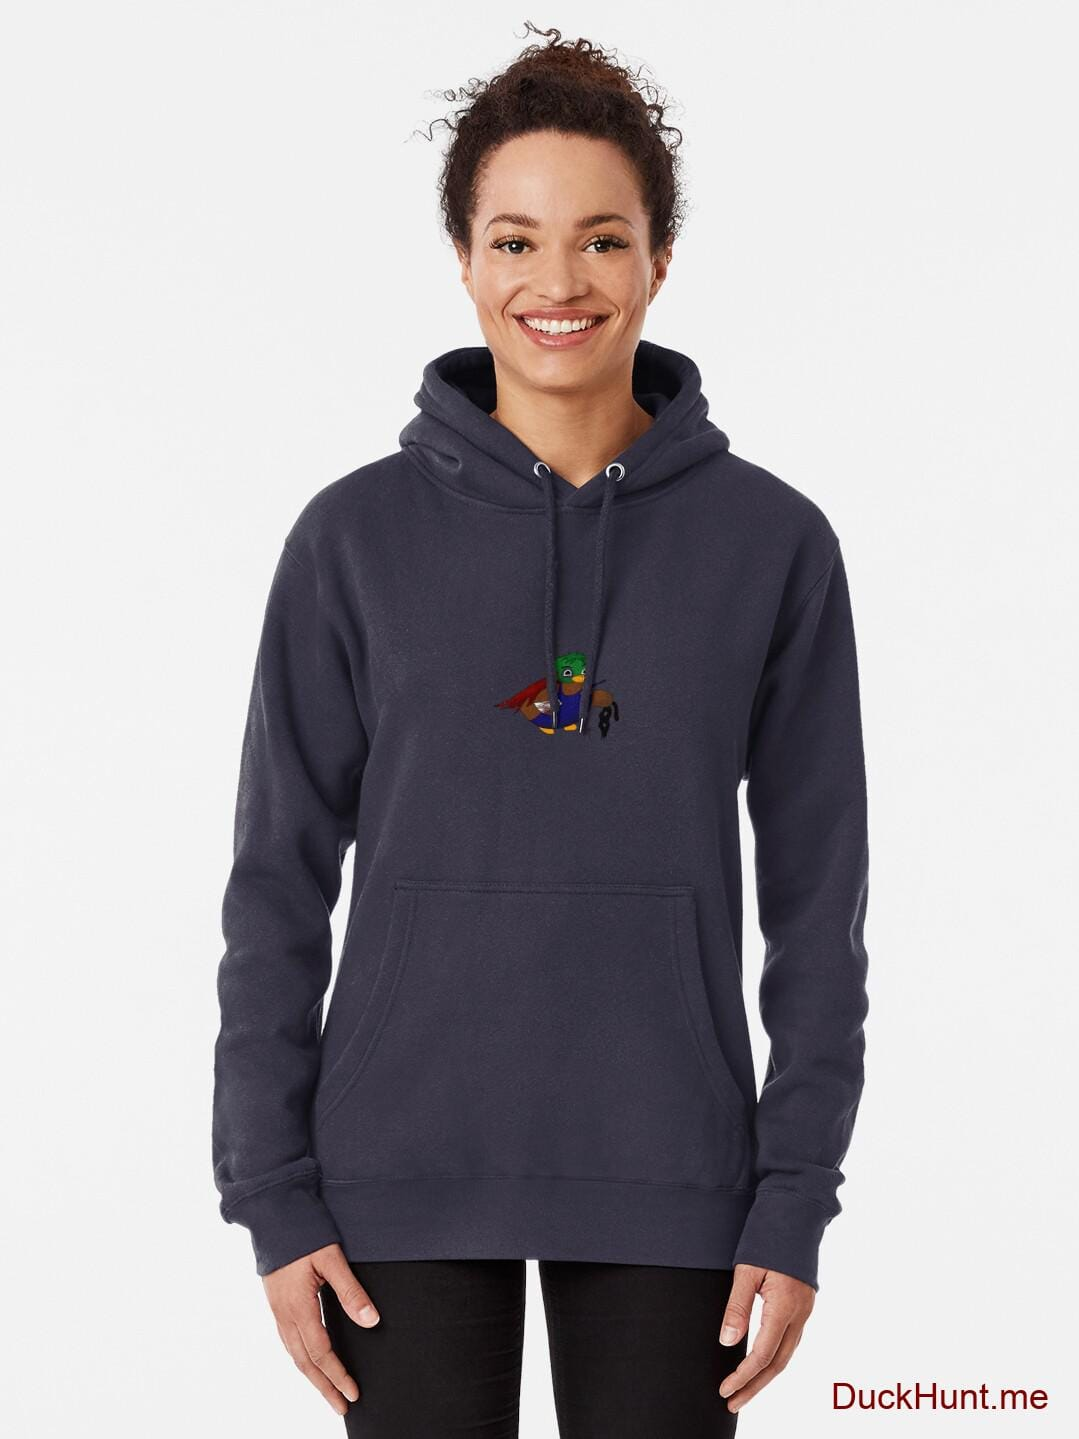 Dead DuckHunt Boss (smokeless) Dark Blue Pullover Hoodie (Front printed) alternative image 1